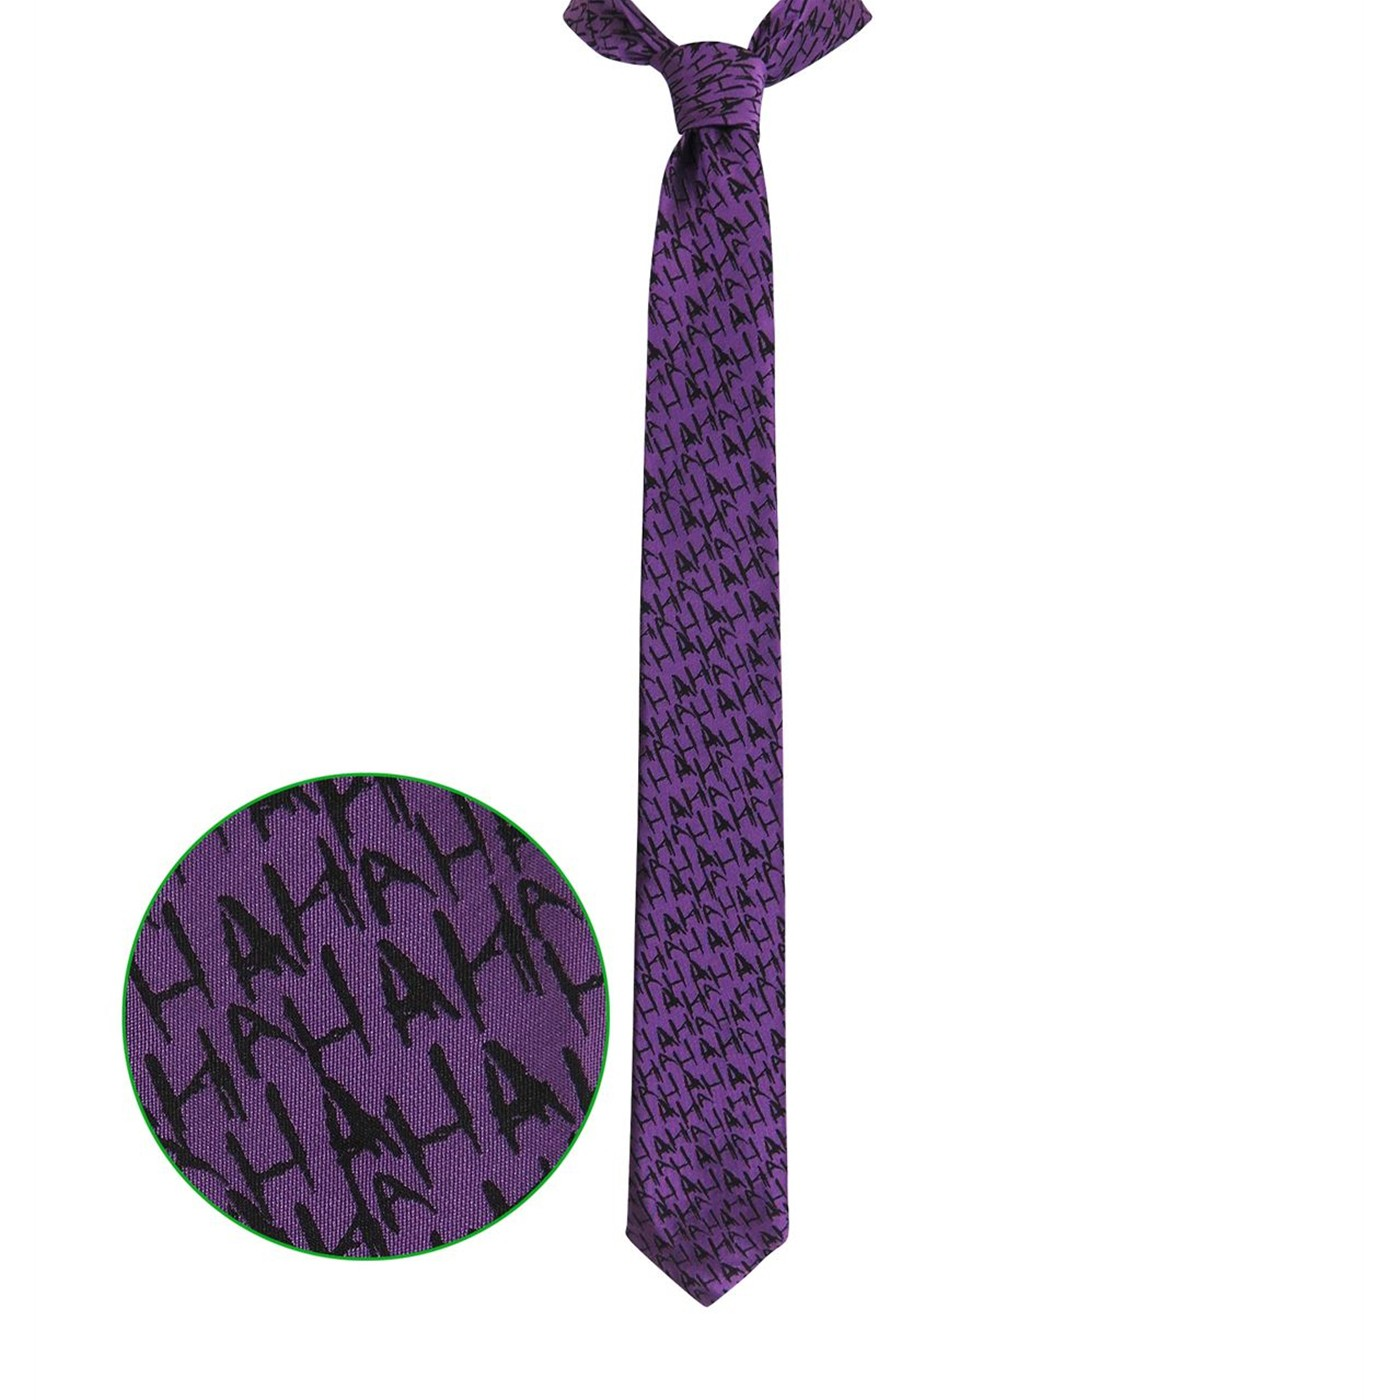 The Joker Micro Print Men's Neck Tie